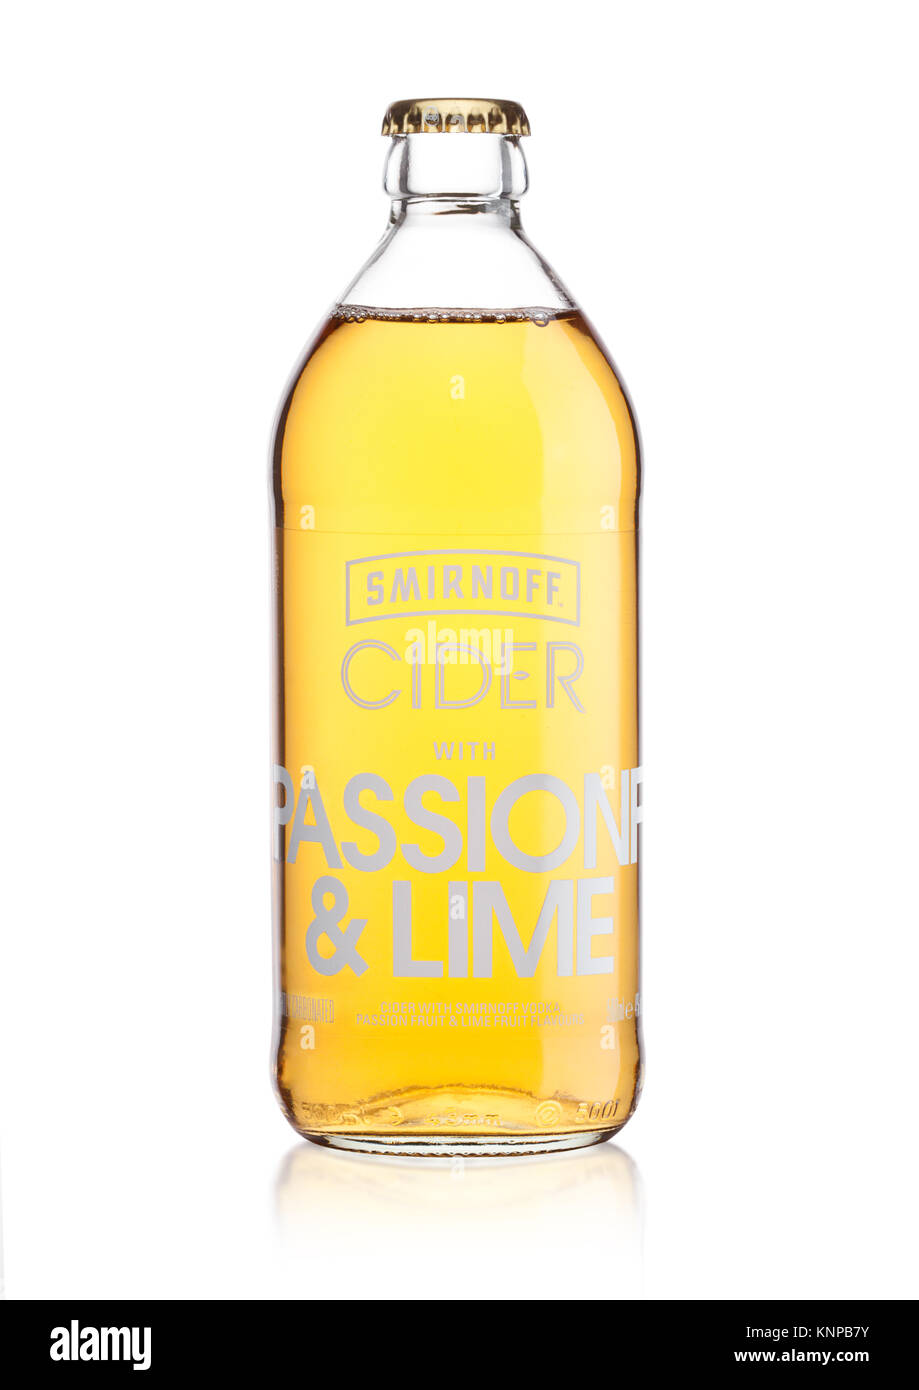 Smirnoff Vodka Bottle Stock Photos Amp Smirnoff Vodka Bottle